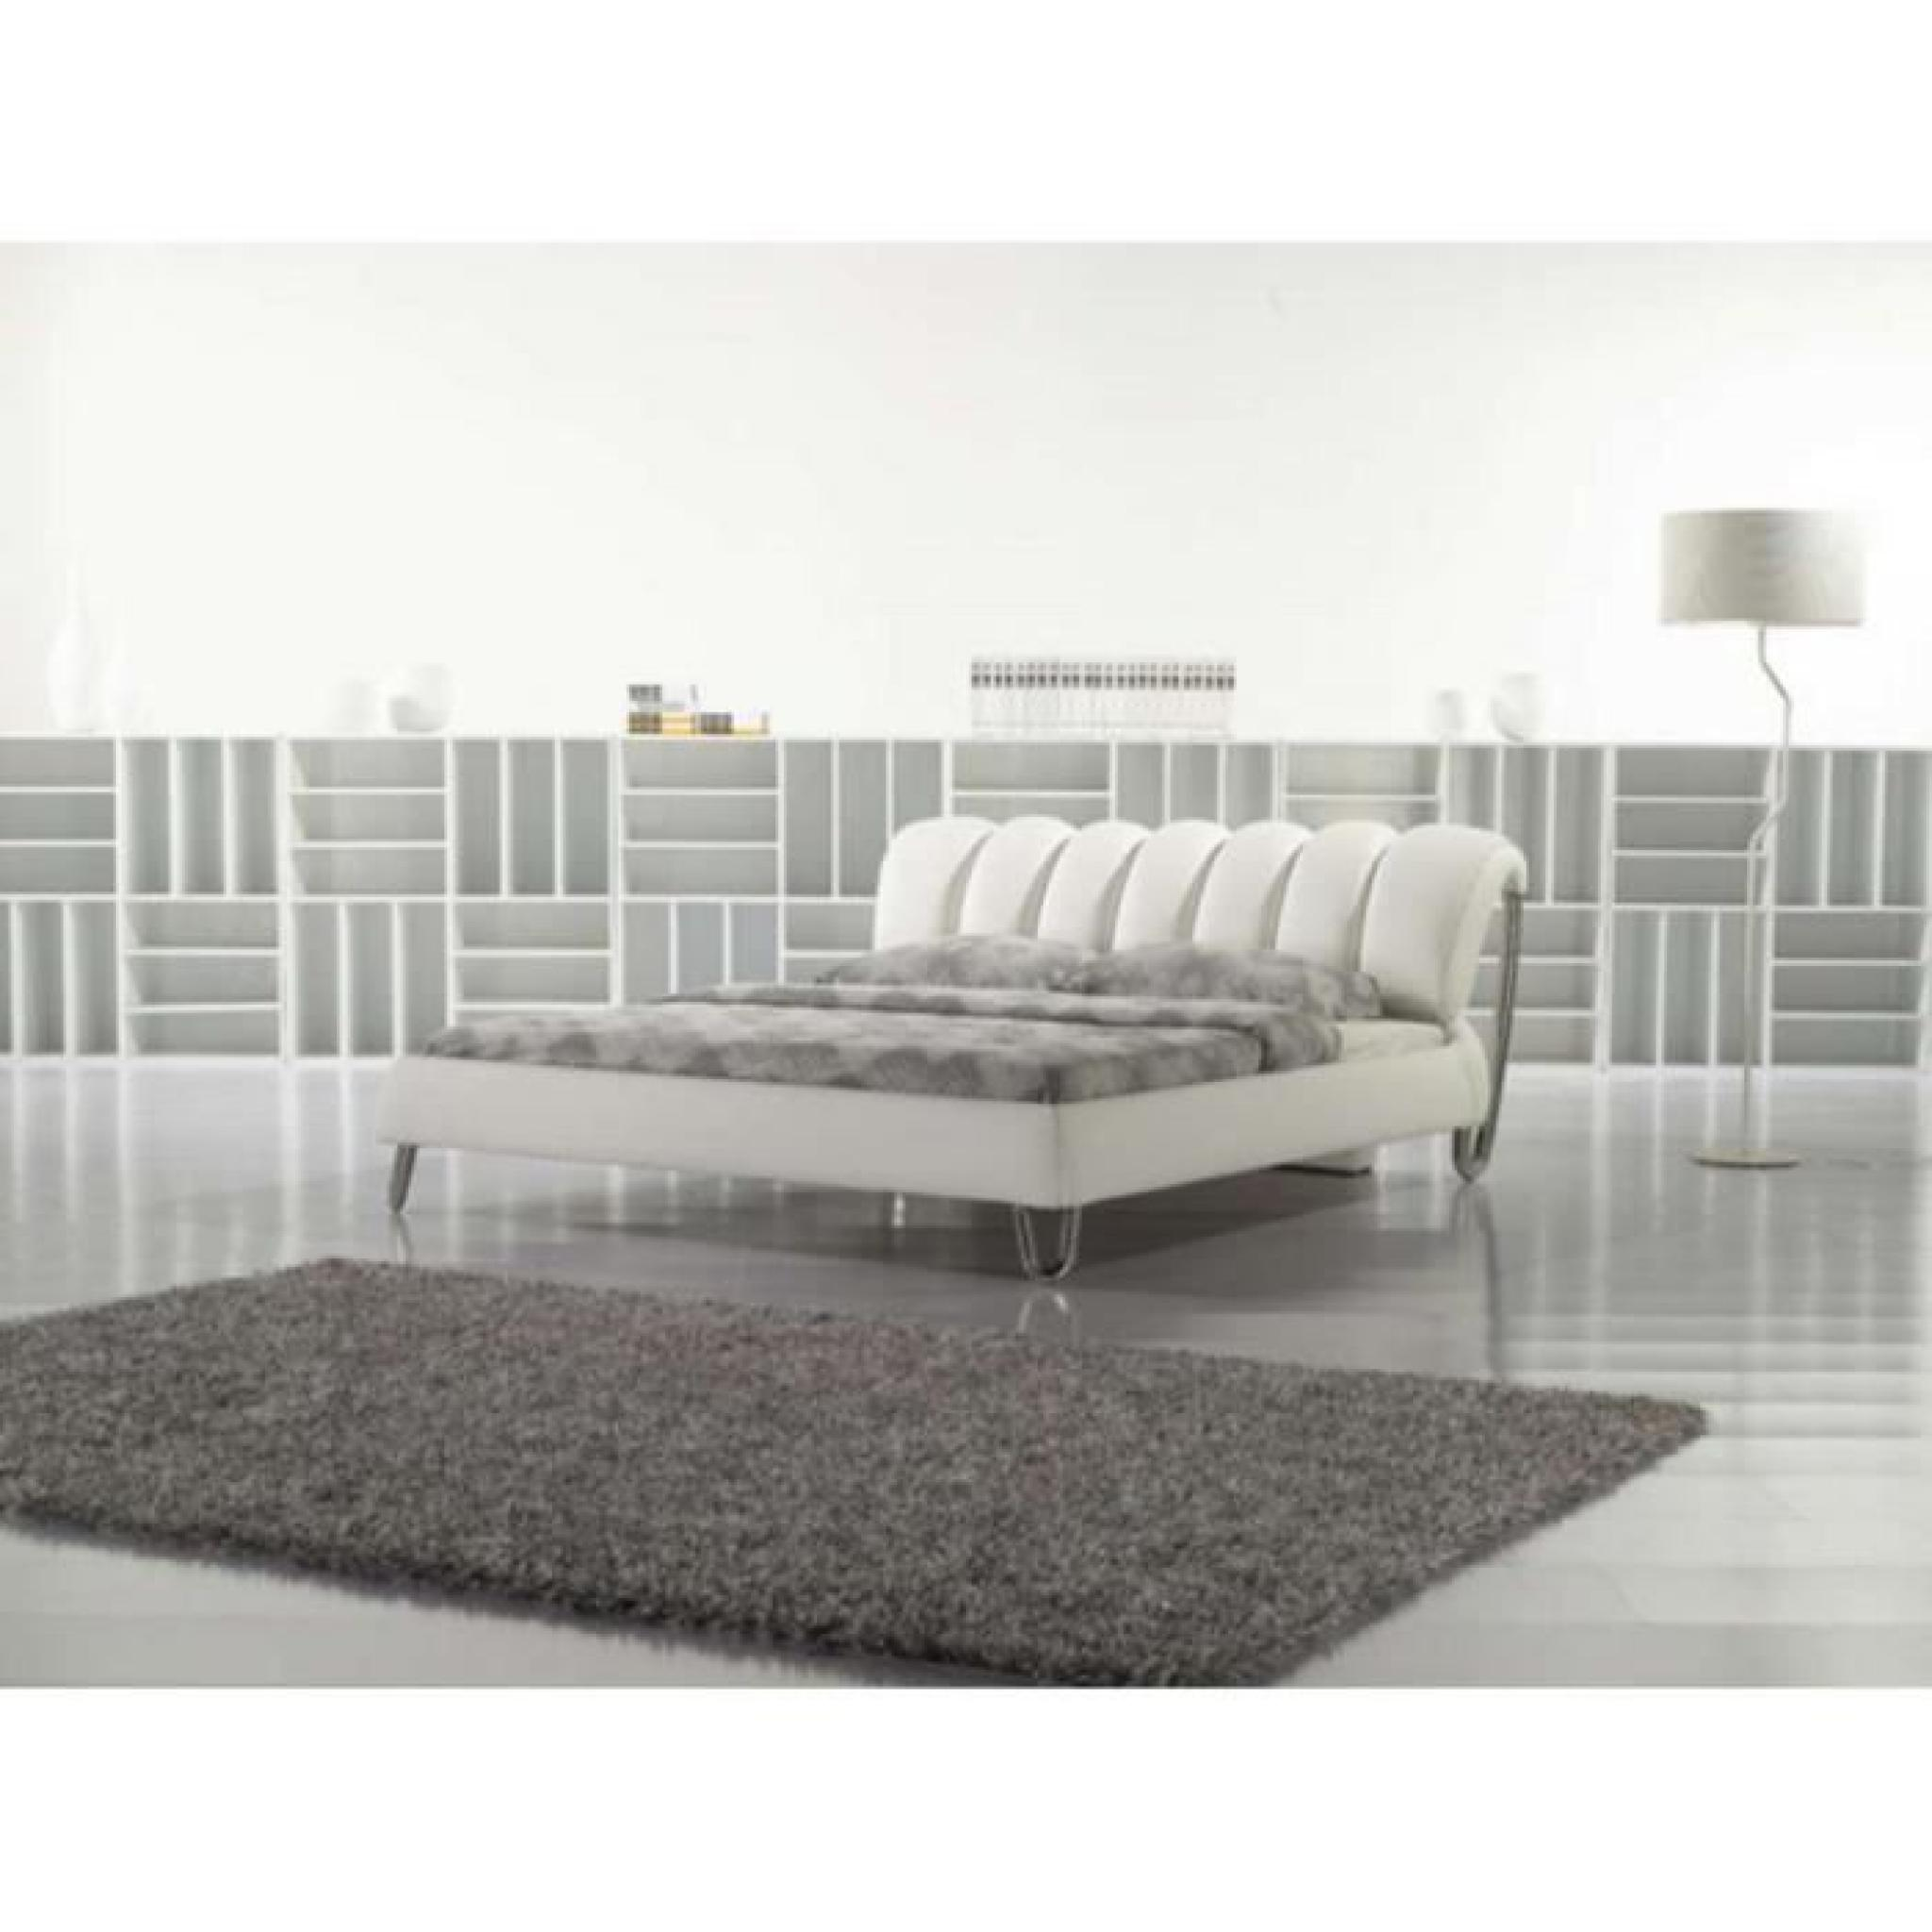 justhome wave blanc lit rembourr en cuir cologique taille 140 x 200 cm achat vente lit pas. Black Bedroom Furniture Sets. Home Design Ideas